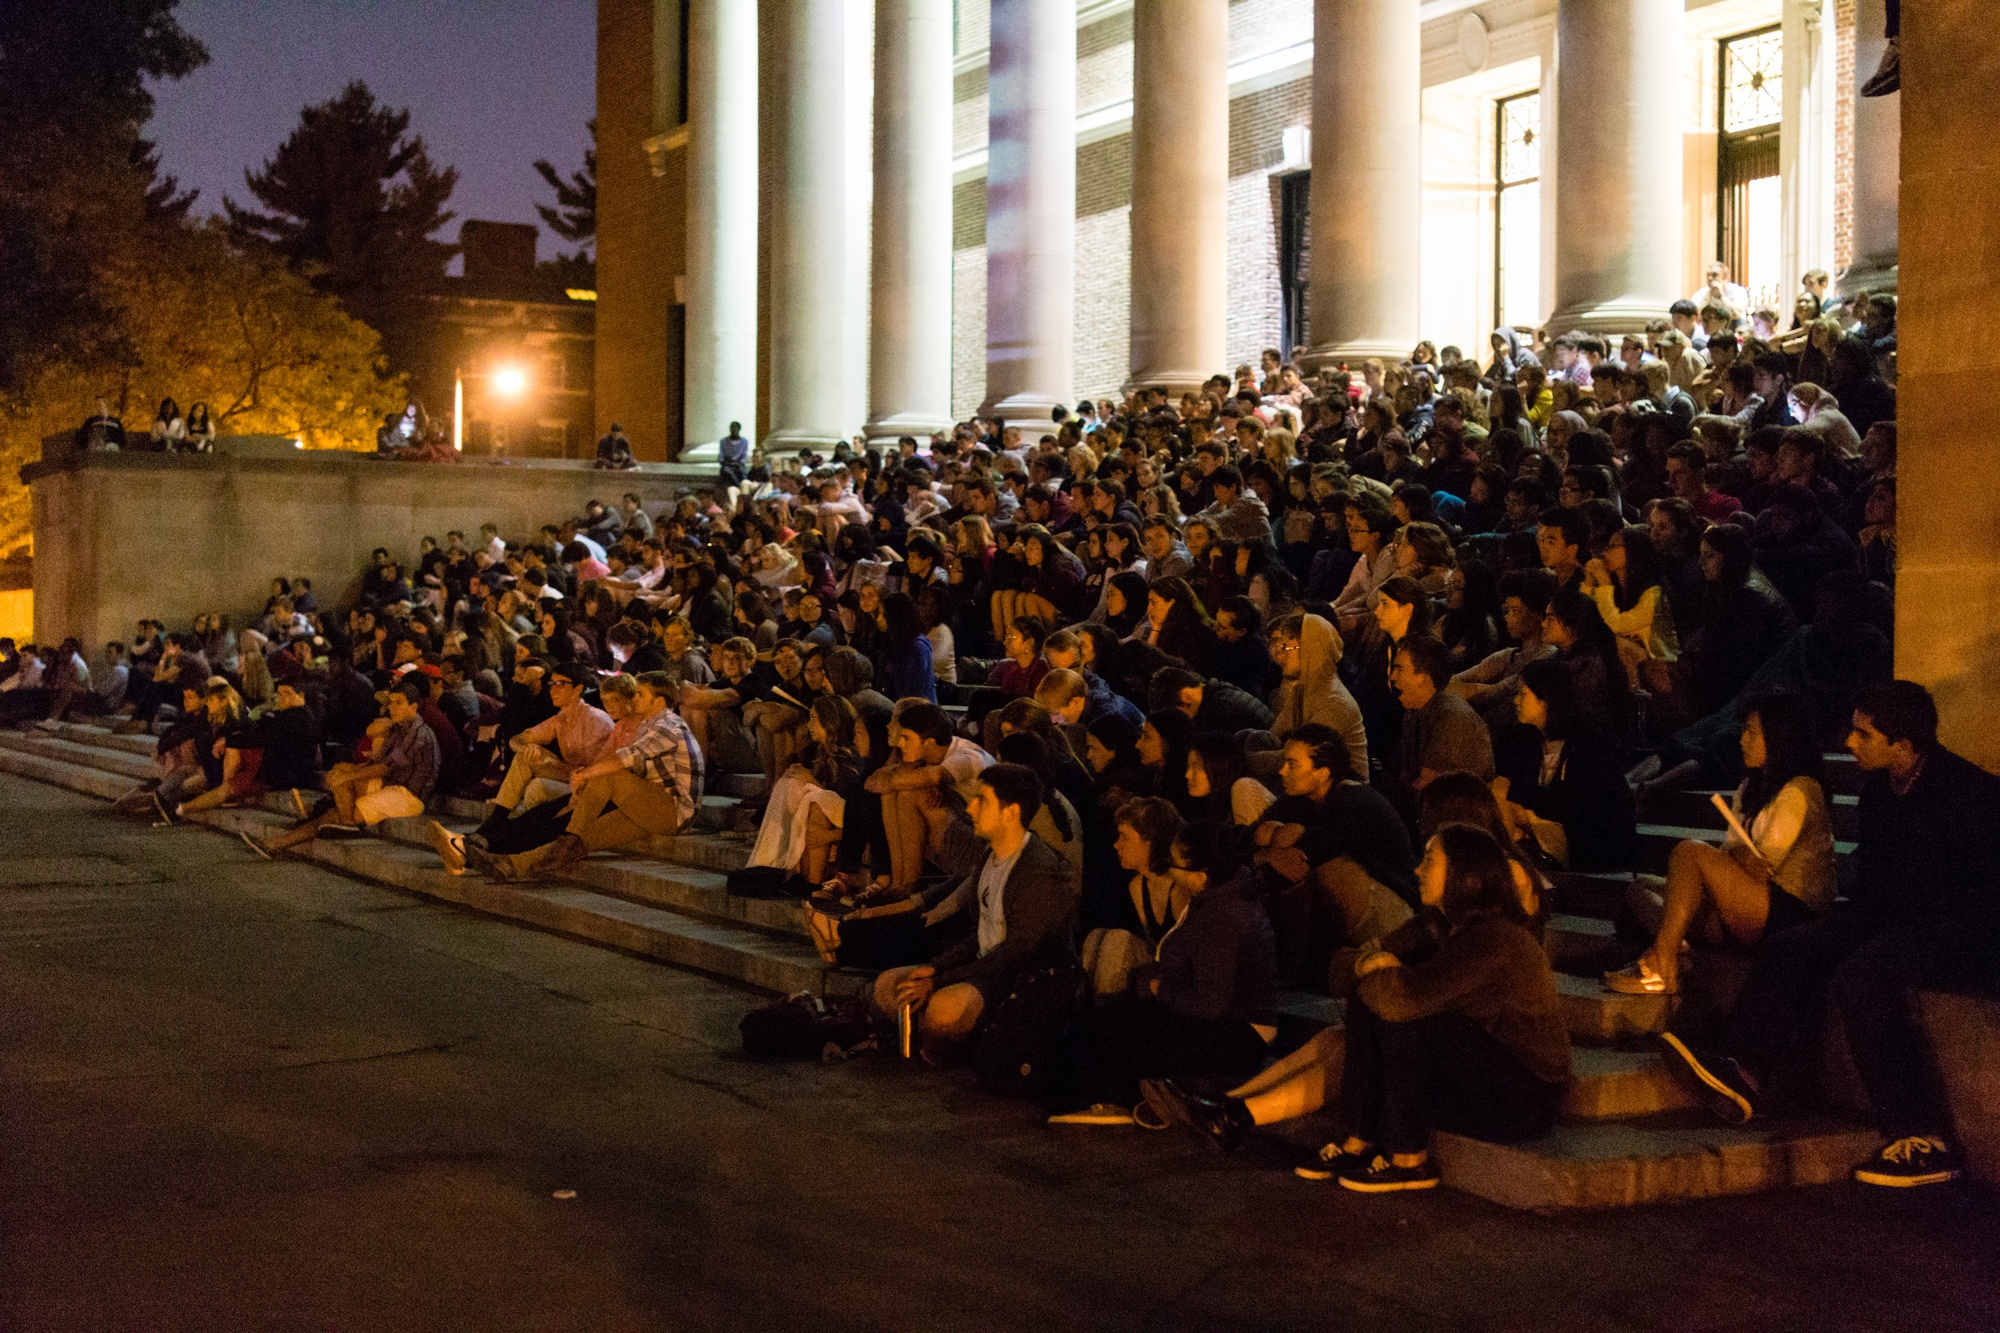 """Freshmen gather on the steps of Widener Library to watch the screening of """"Legally Blonde,"""" hosted by the College Events Board on Thursday, Aug. 29."""